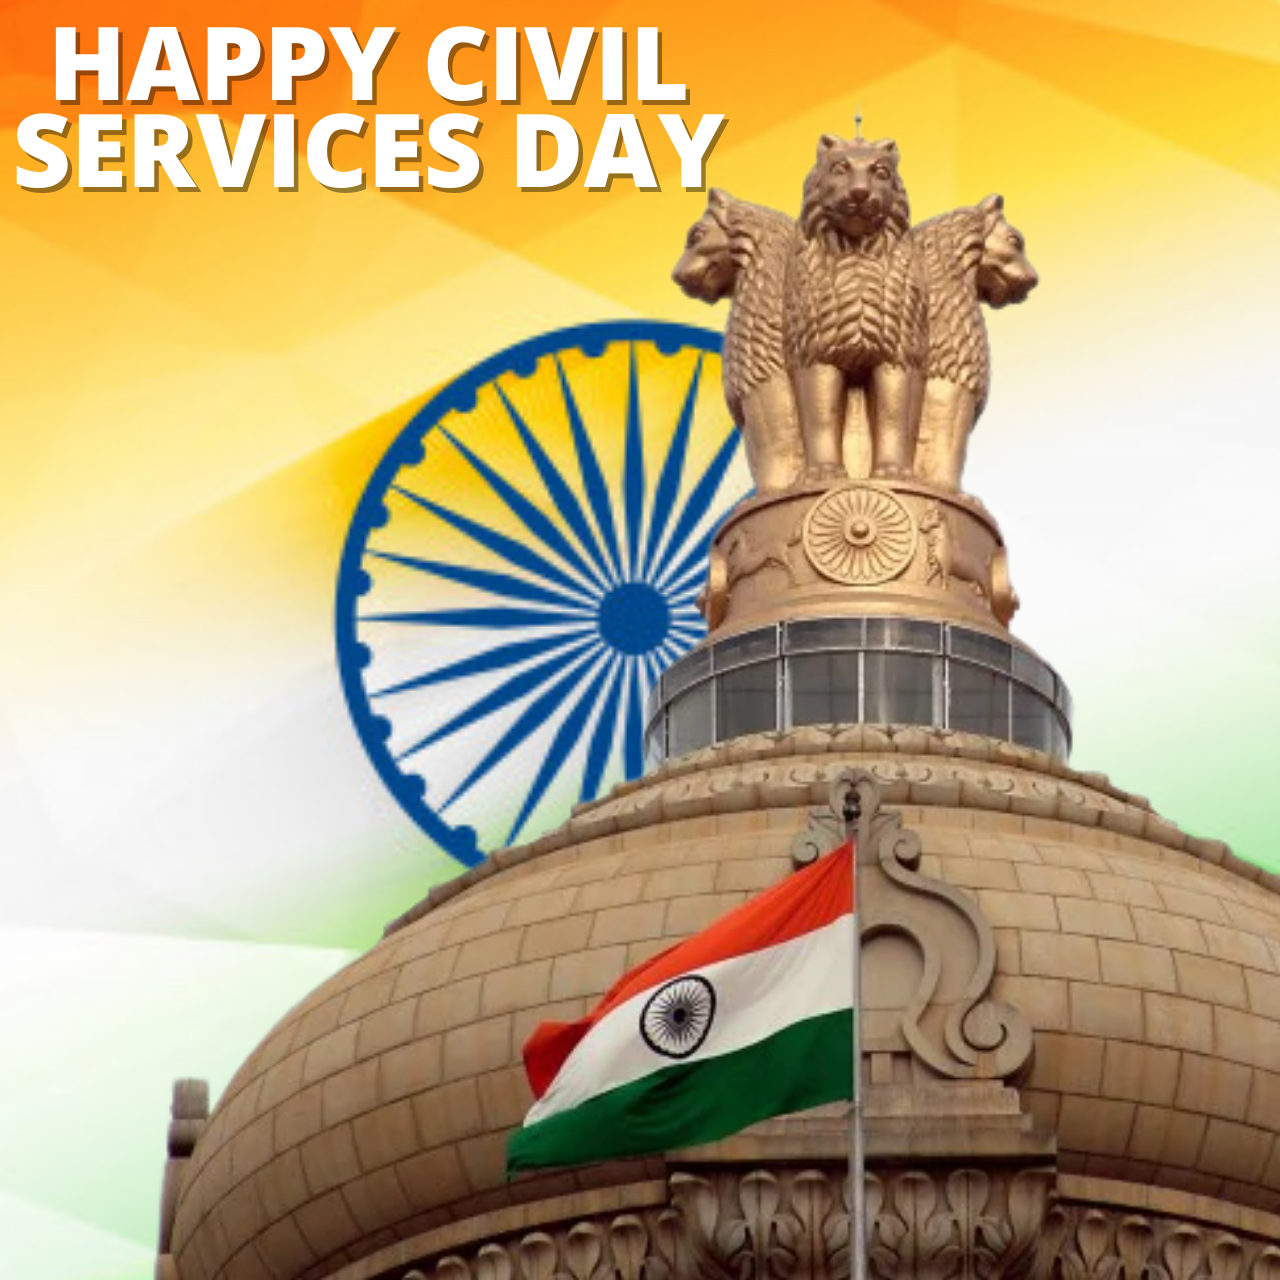 Happy Civil Services Day 2021 Quotes, Messages, Greetings, Wishes, and HD Images to Share